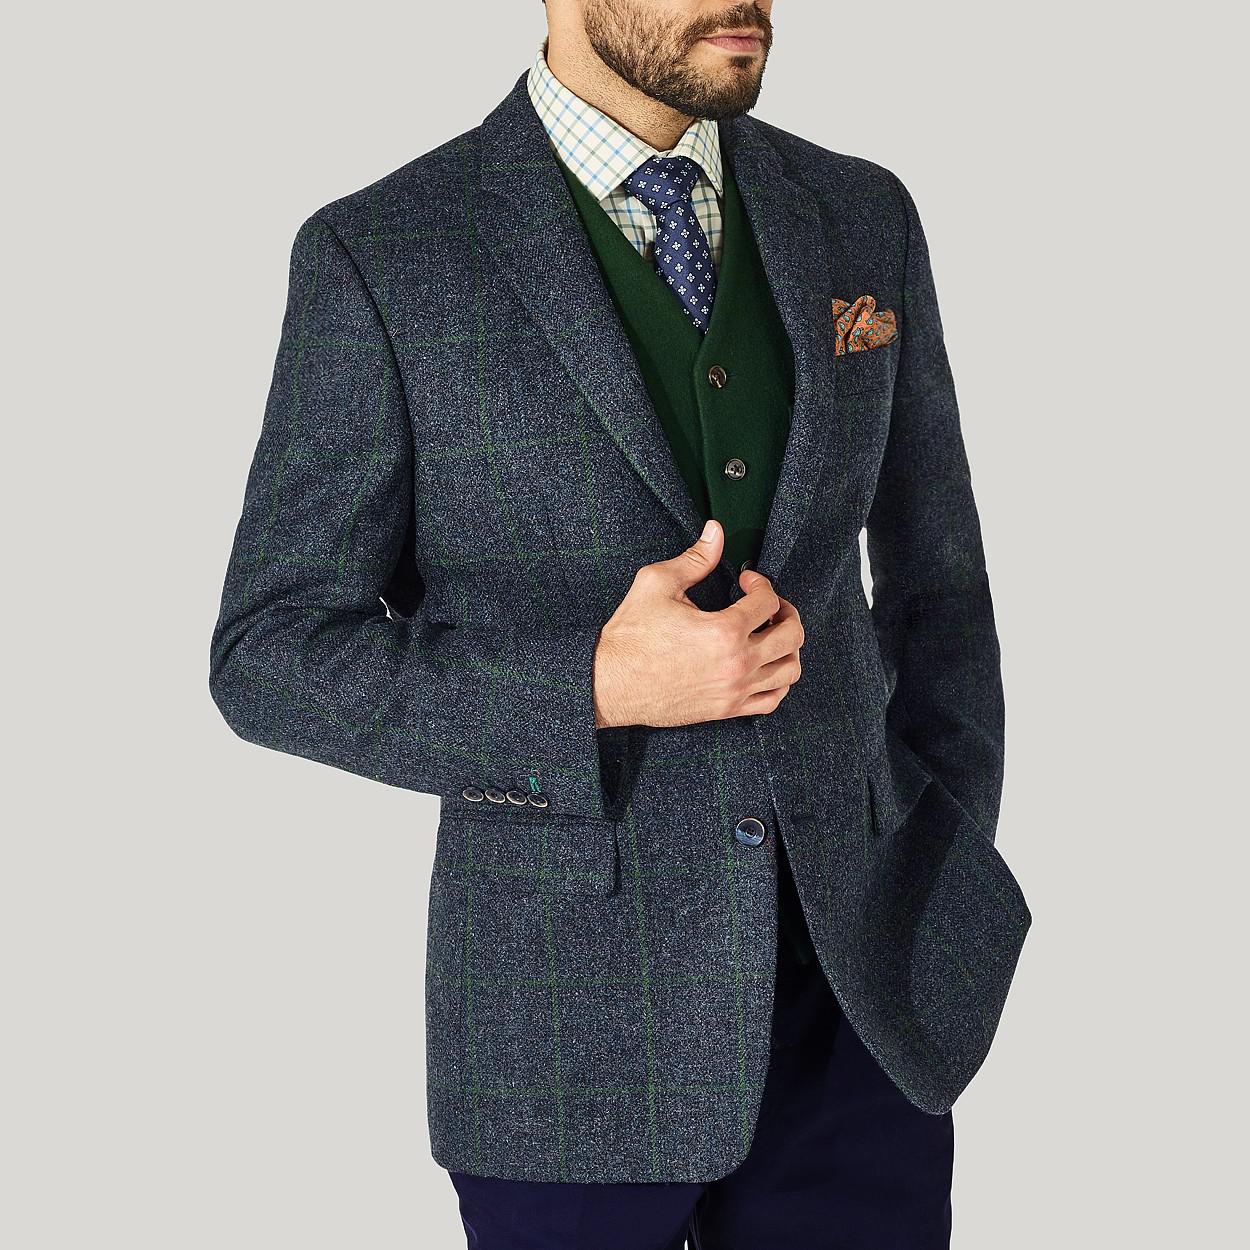 Harvie and hudson Dark Blue And Green Check Lovat Tweed ...